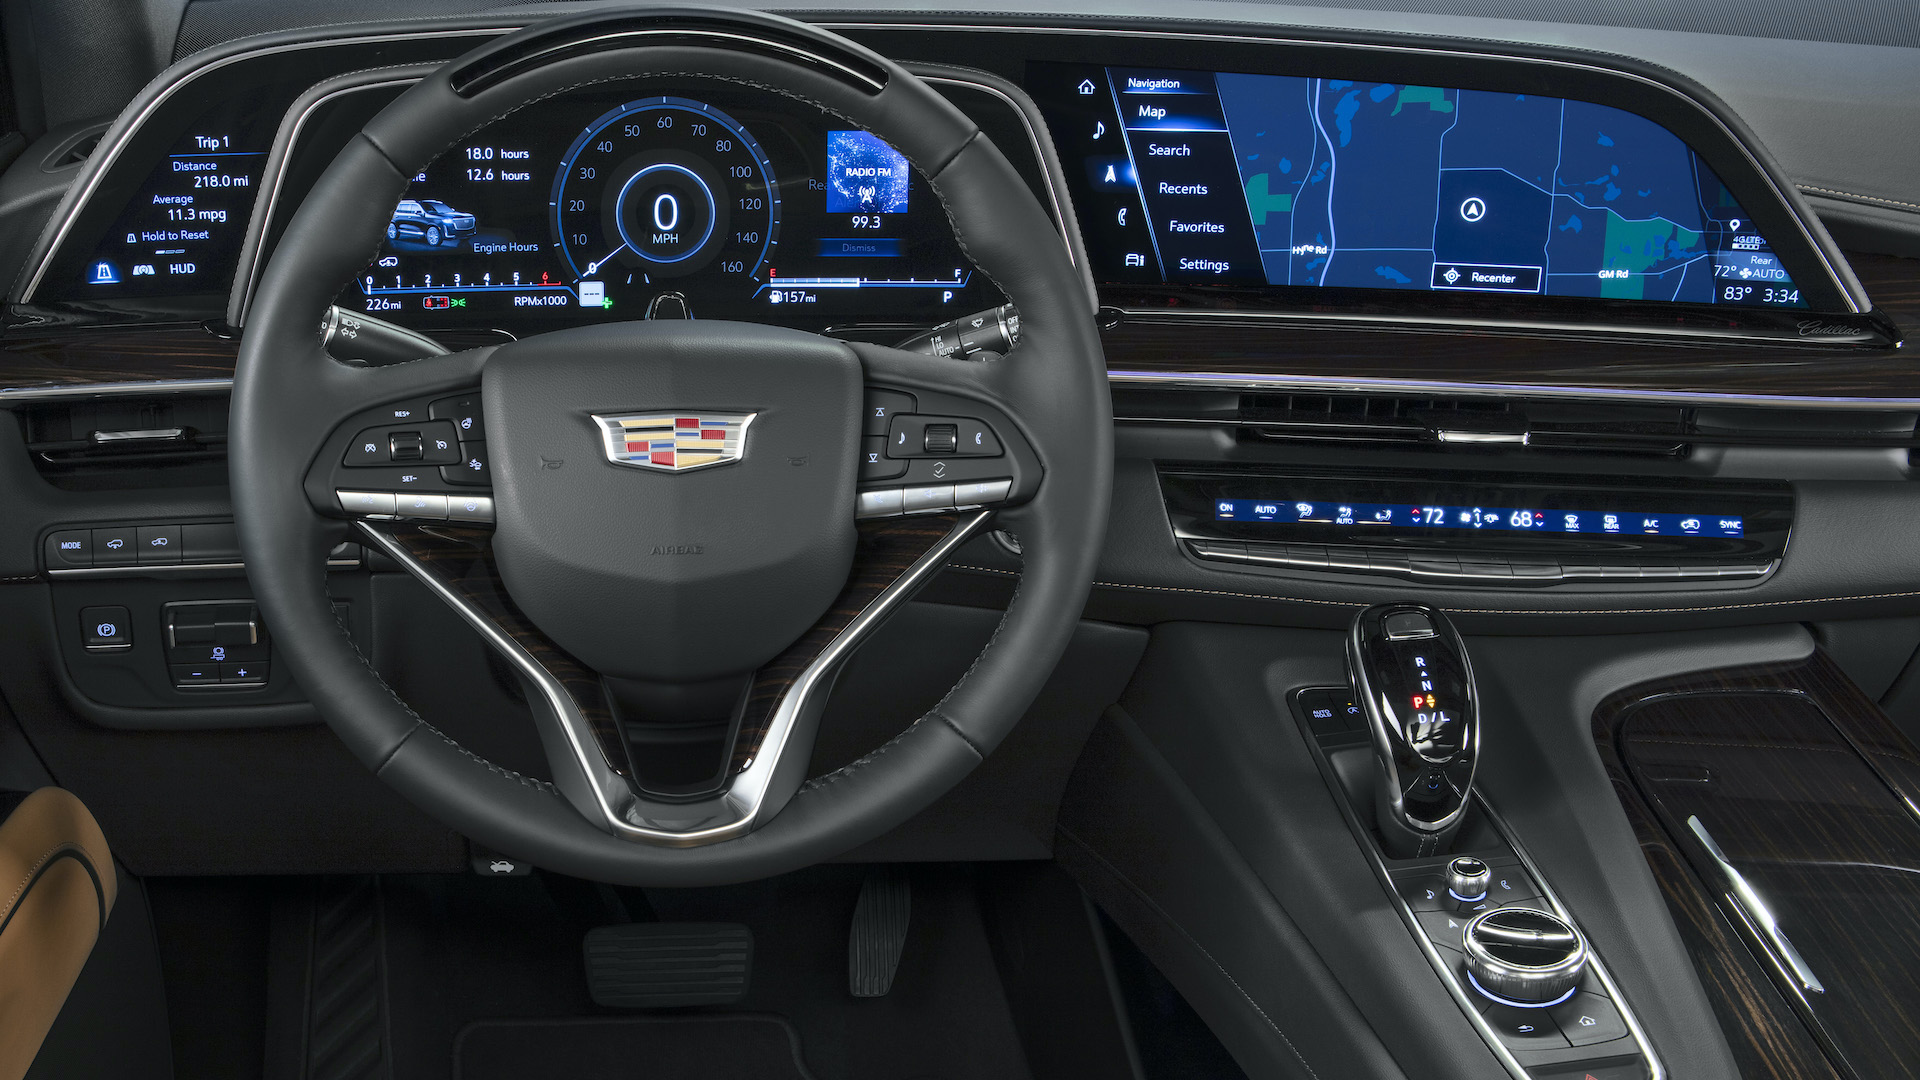 Rightware collaborates with LG Electronics to power graphics for industry-first curved OLED display on 2021 Cadillac Escalade